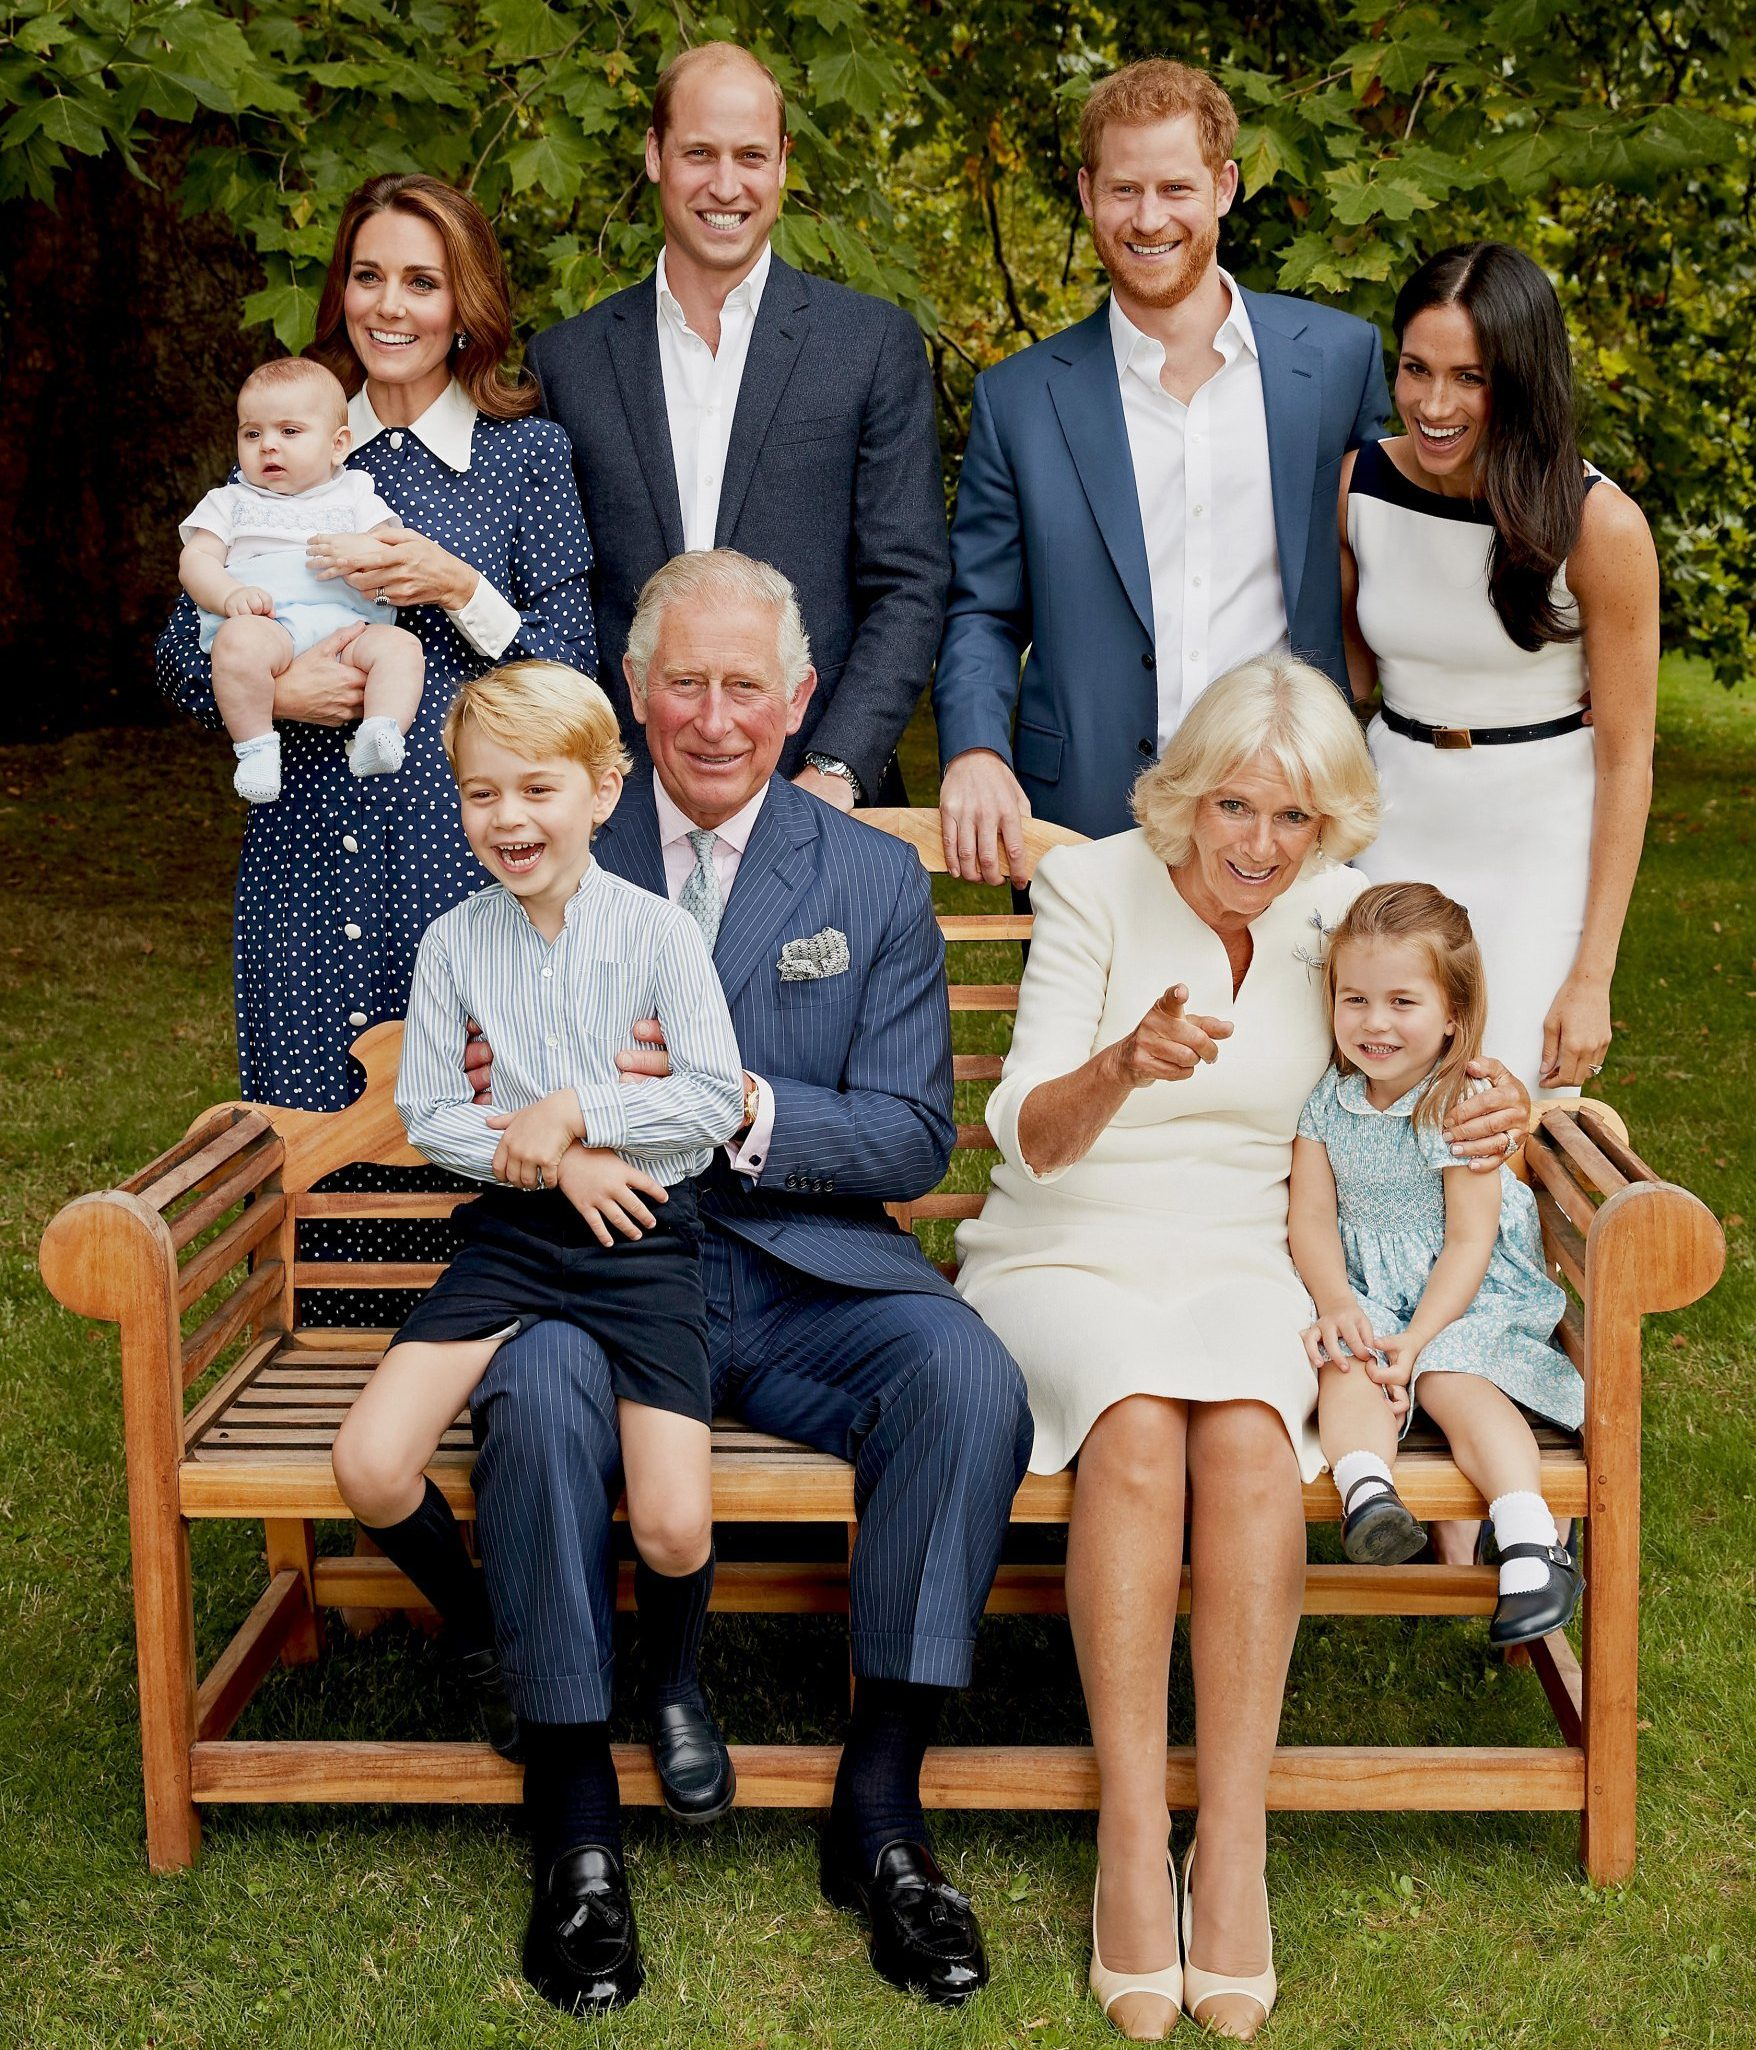 LONDON, UNITED KINGDOM - SEPTEMBER 5: (IMAGE STRICTLY EMBARGOED FOR PUBLICATION UNTIL 10pm GMT TUESDAY 13th NOVEMBER) (NO SALES. Strictly for editorial use only and available until December 12th 2018) In this handout image provided by Clarence House, HRH Prince Charles Prince of Wales poses for an official portrait to mark his 70th Birthday in the gardens of Clarence House, with Their Royal Highnesses Camilla Duchess of Cornwall, Prince Willliam Duke of Cambridge, Catherine Duchess of Cambridge, Prince George, Princess Charlotte, Prince Louis, Prince Harry Duke of Sussex and Meghan Duchess of Sussex, on September 5, 2018 in London, England. (Photo by Chris Jackson / Clarence House via Getty Images)